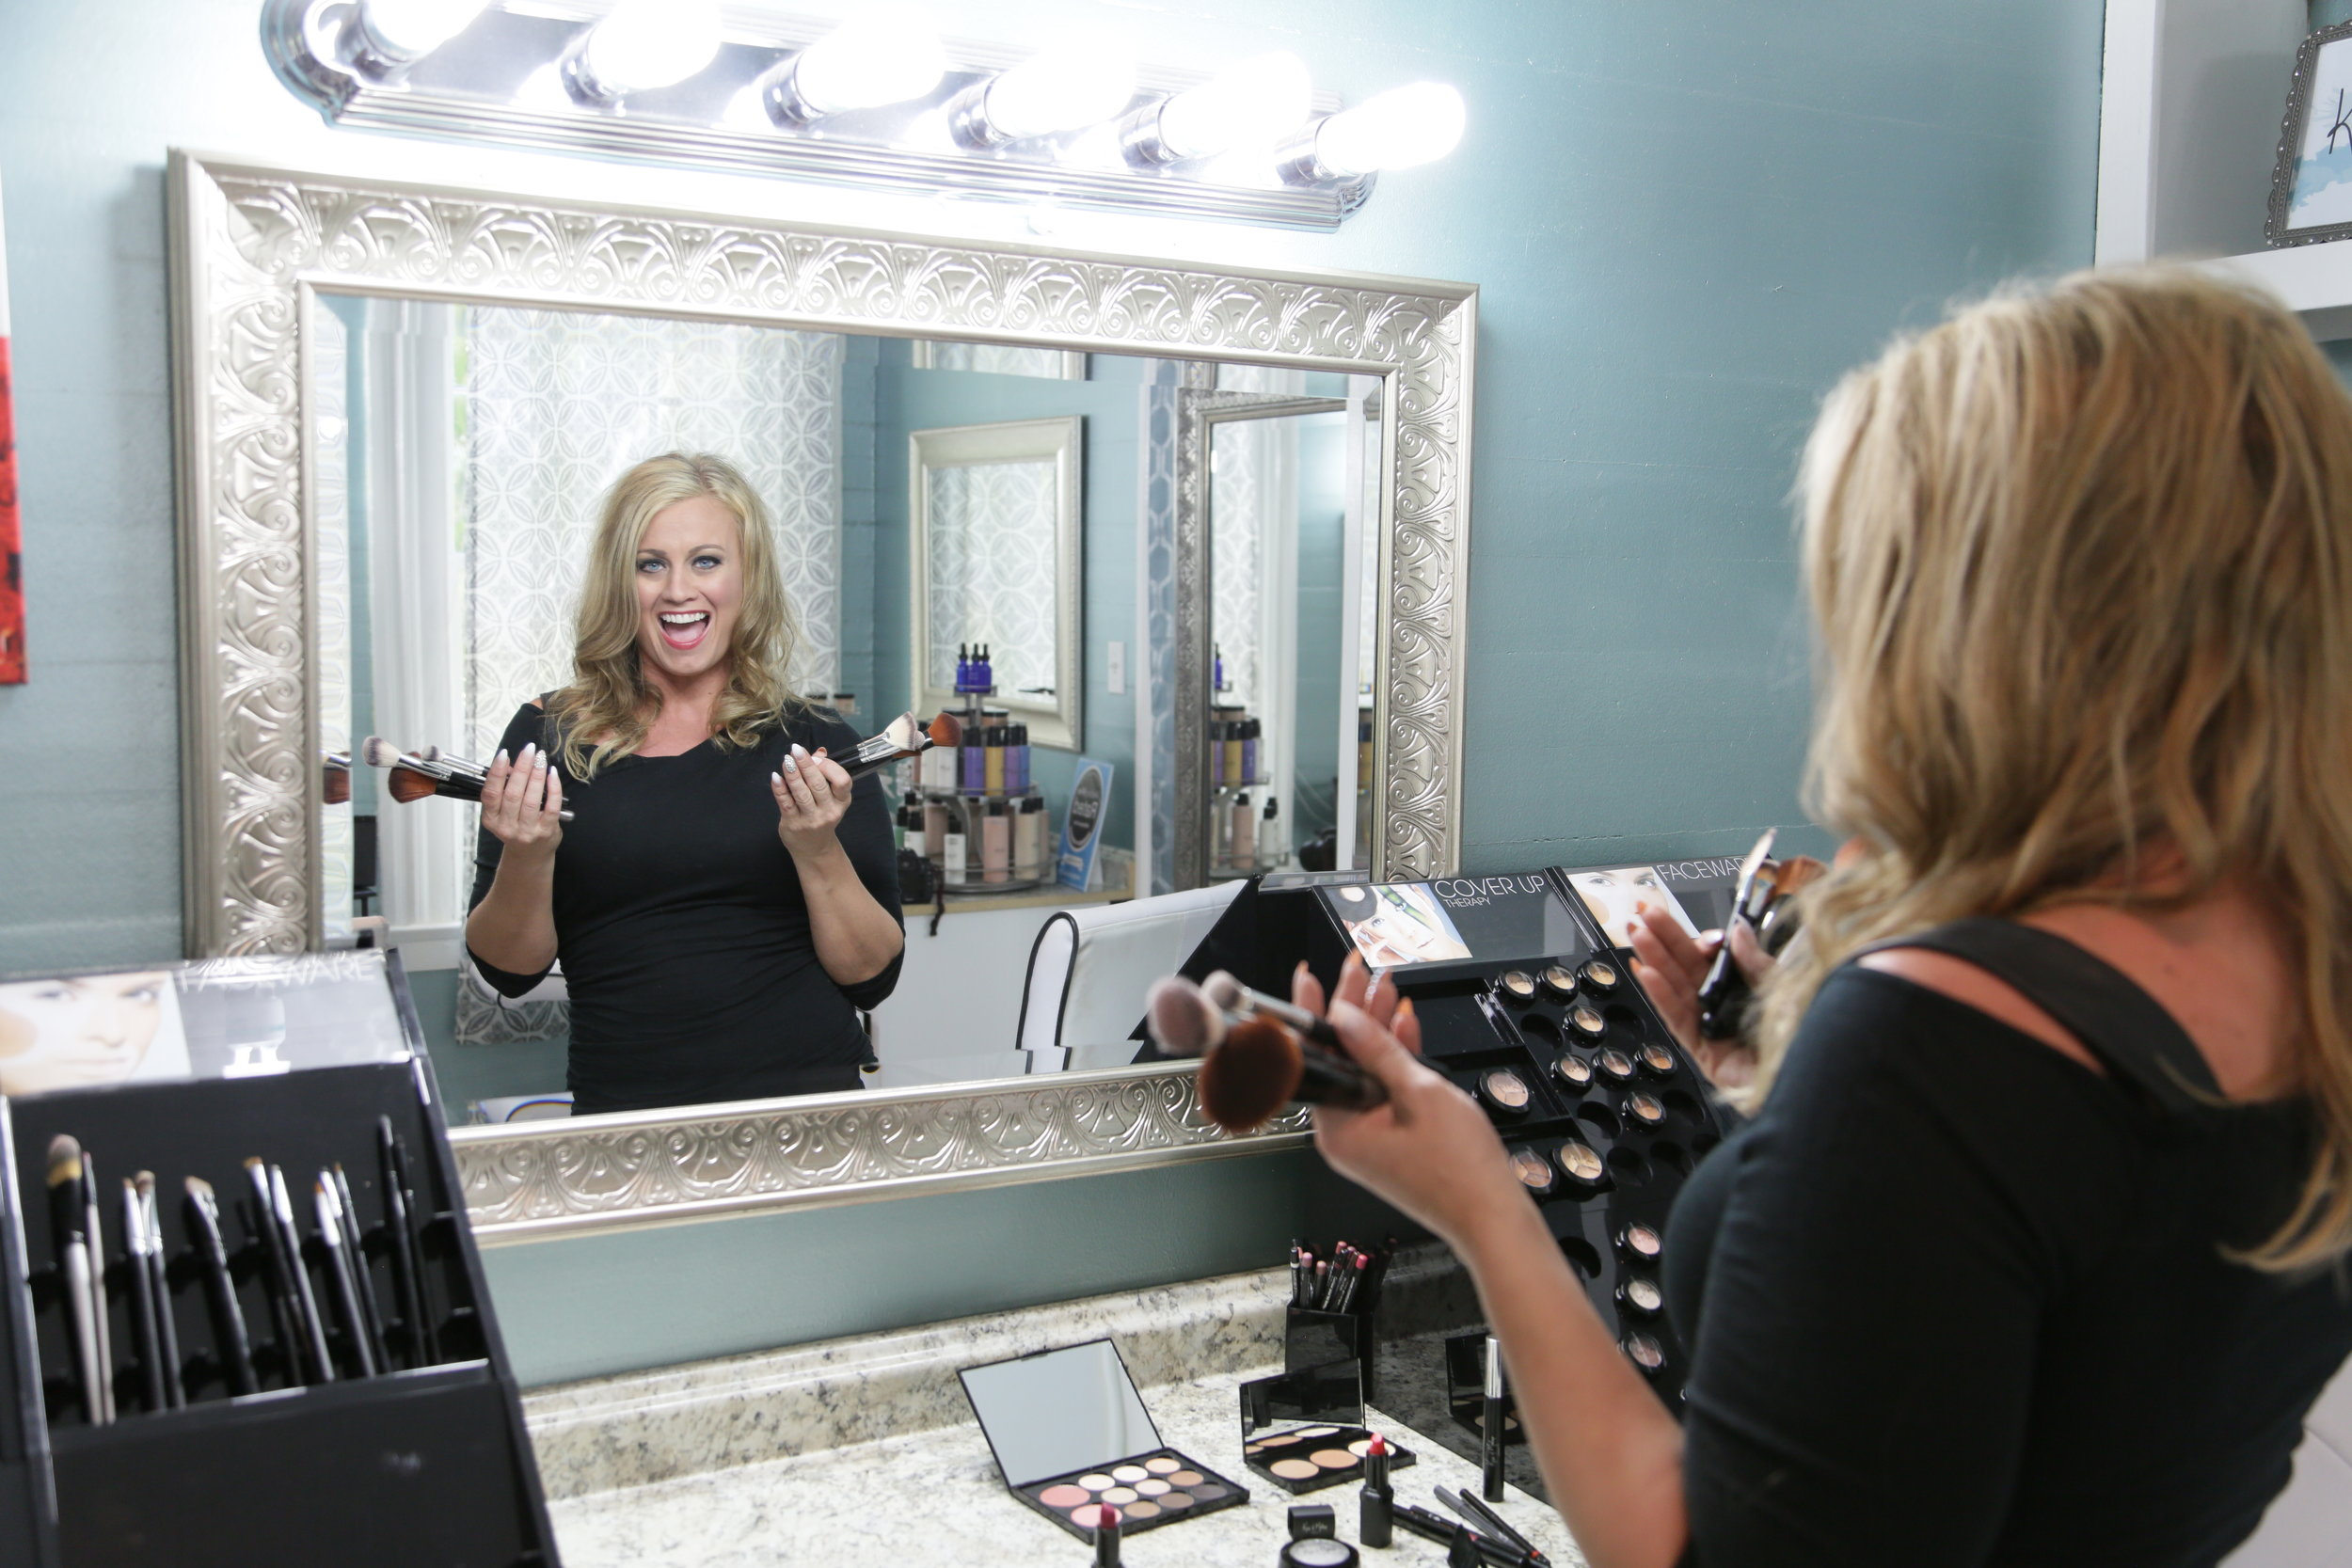 Image of Lorri Bolander - founder of Kiss and Makeup Cosmetics